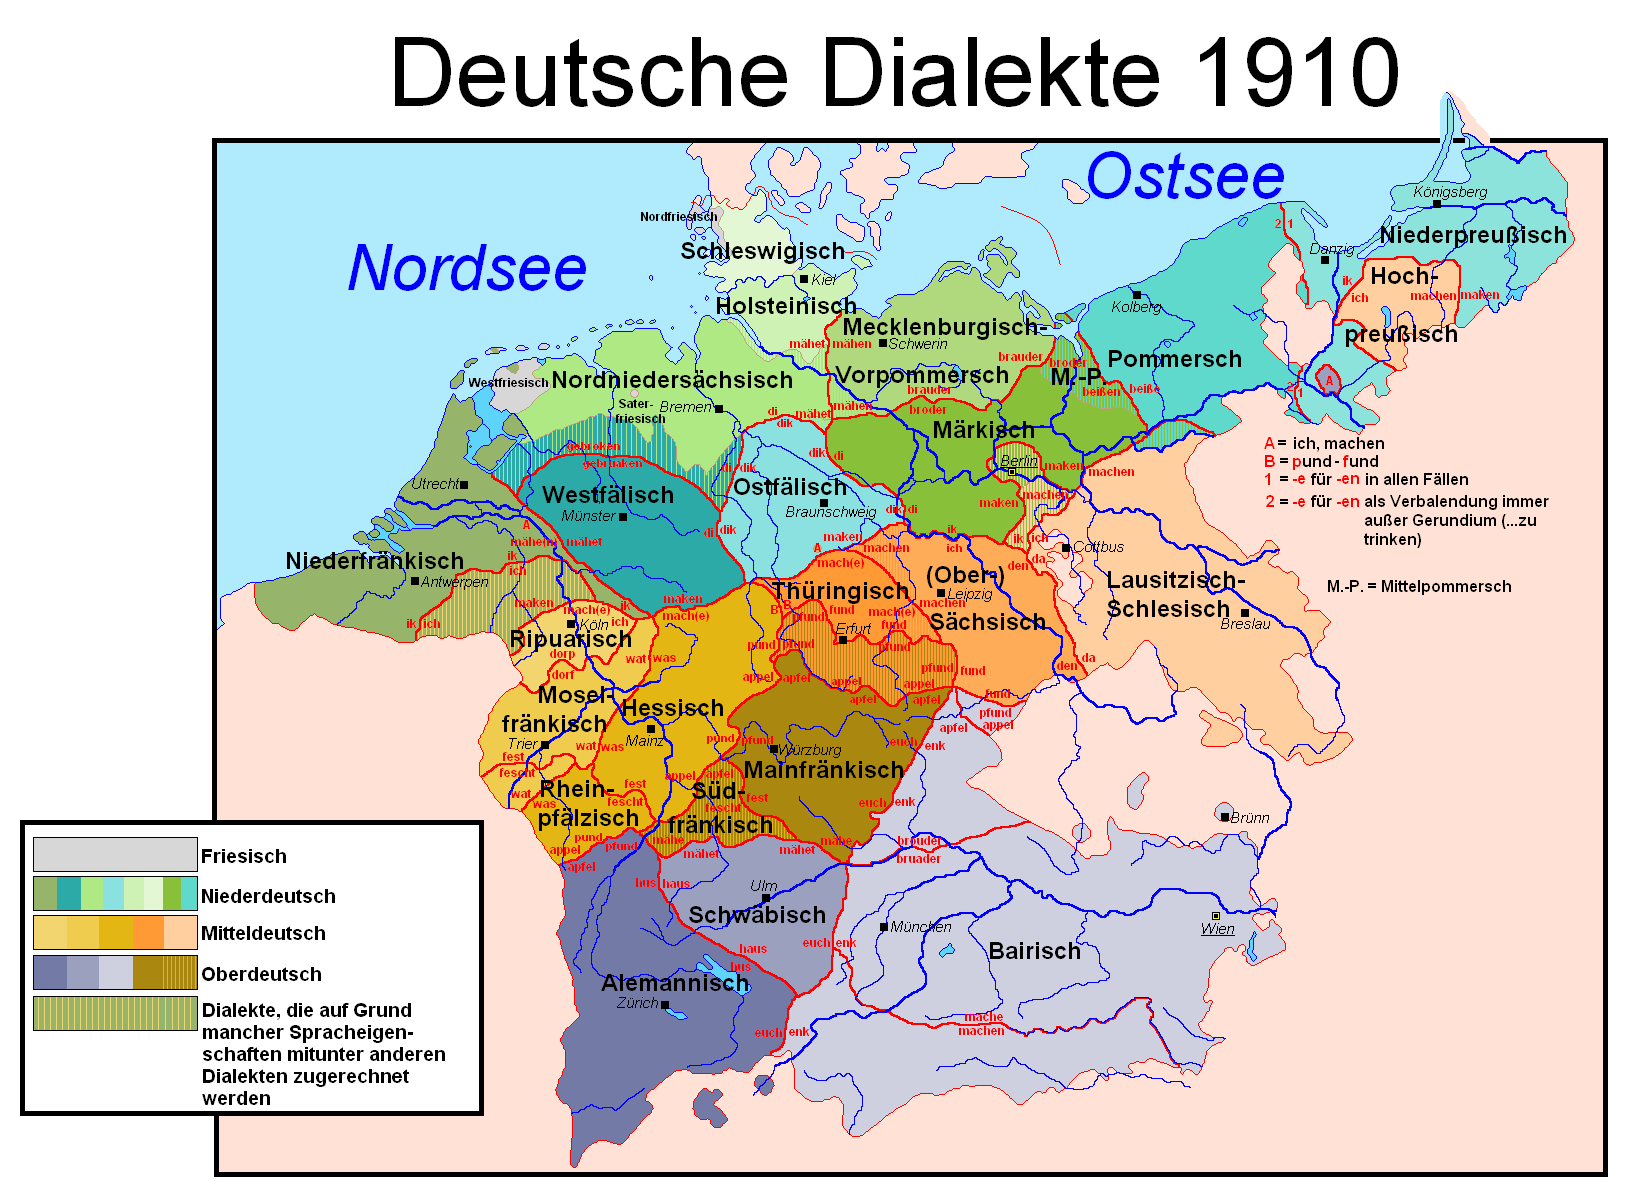 isoglosses of german and dutch dialects in 1910